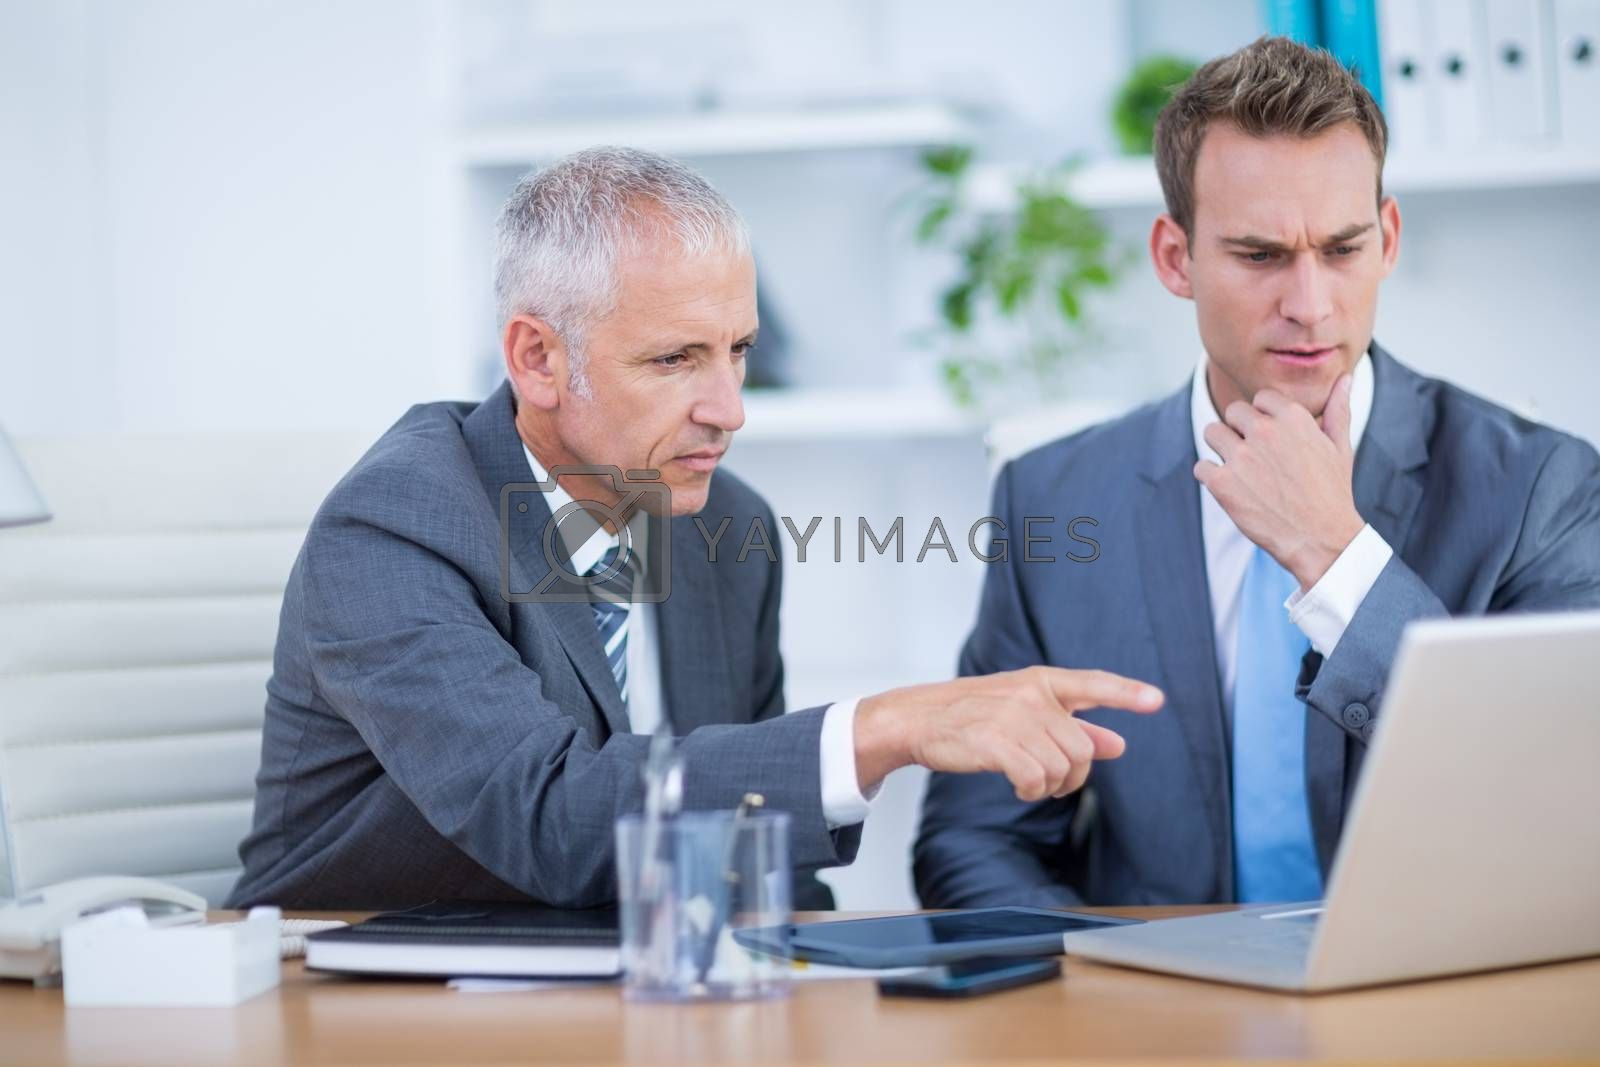 Royalty free image of Serious businessmen working together on laptop by Wavebreakmedia